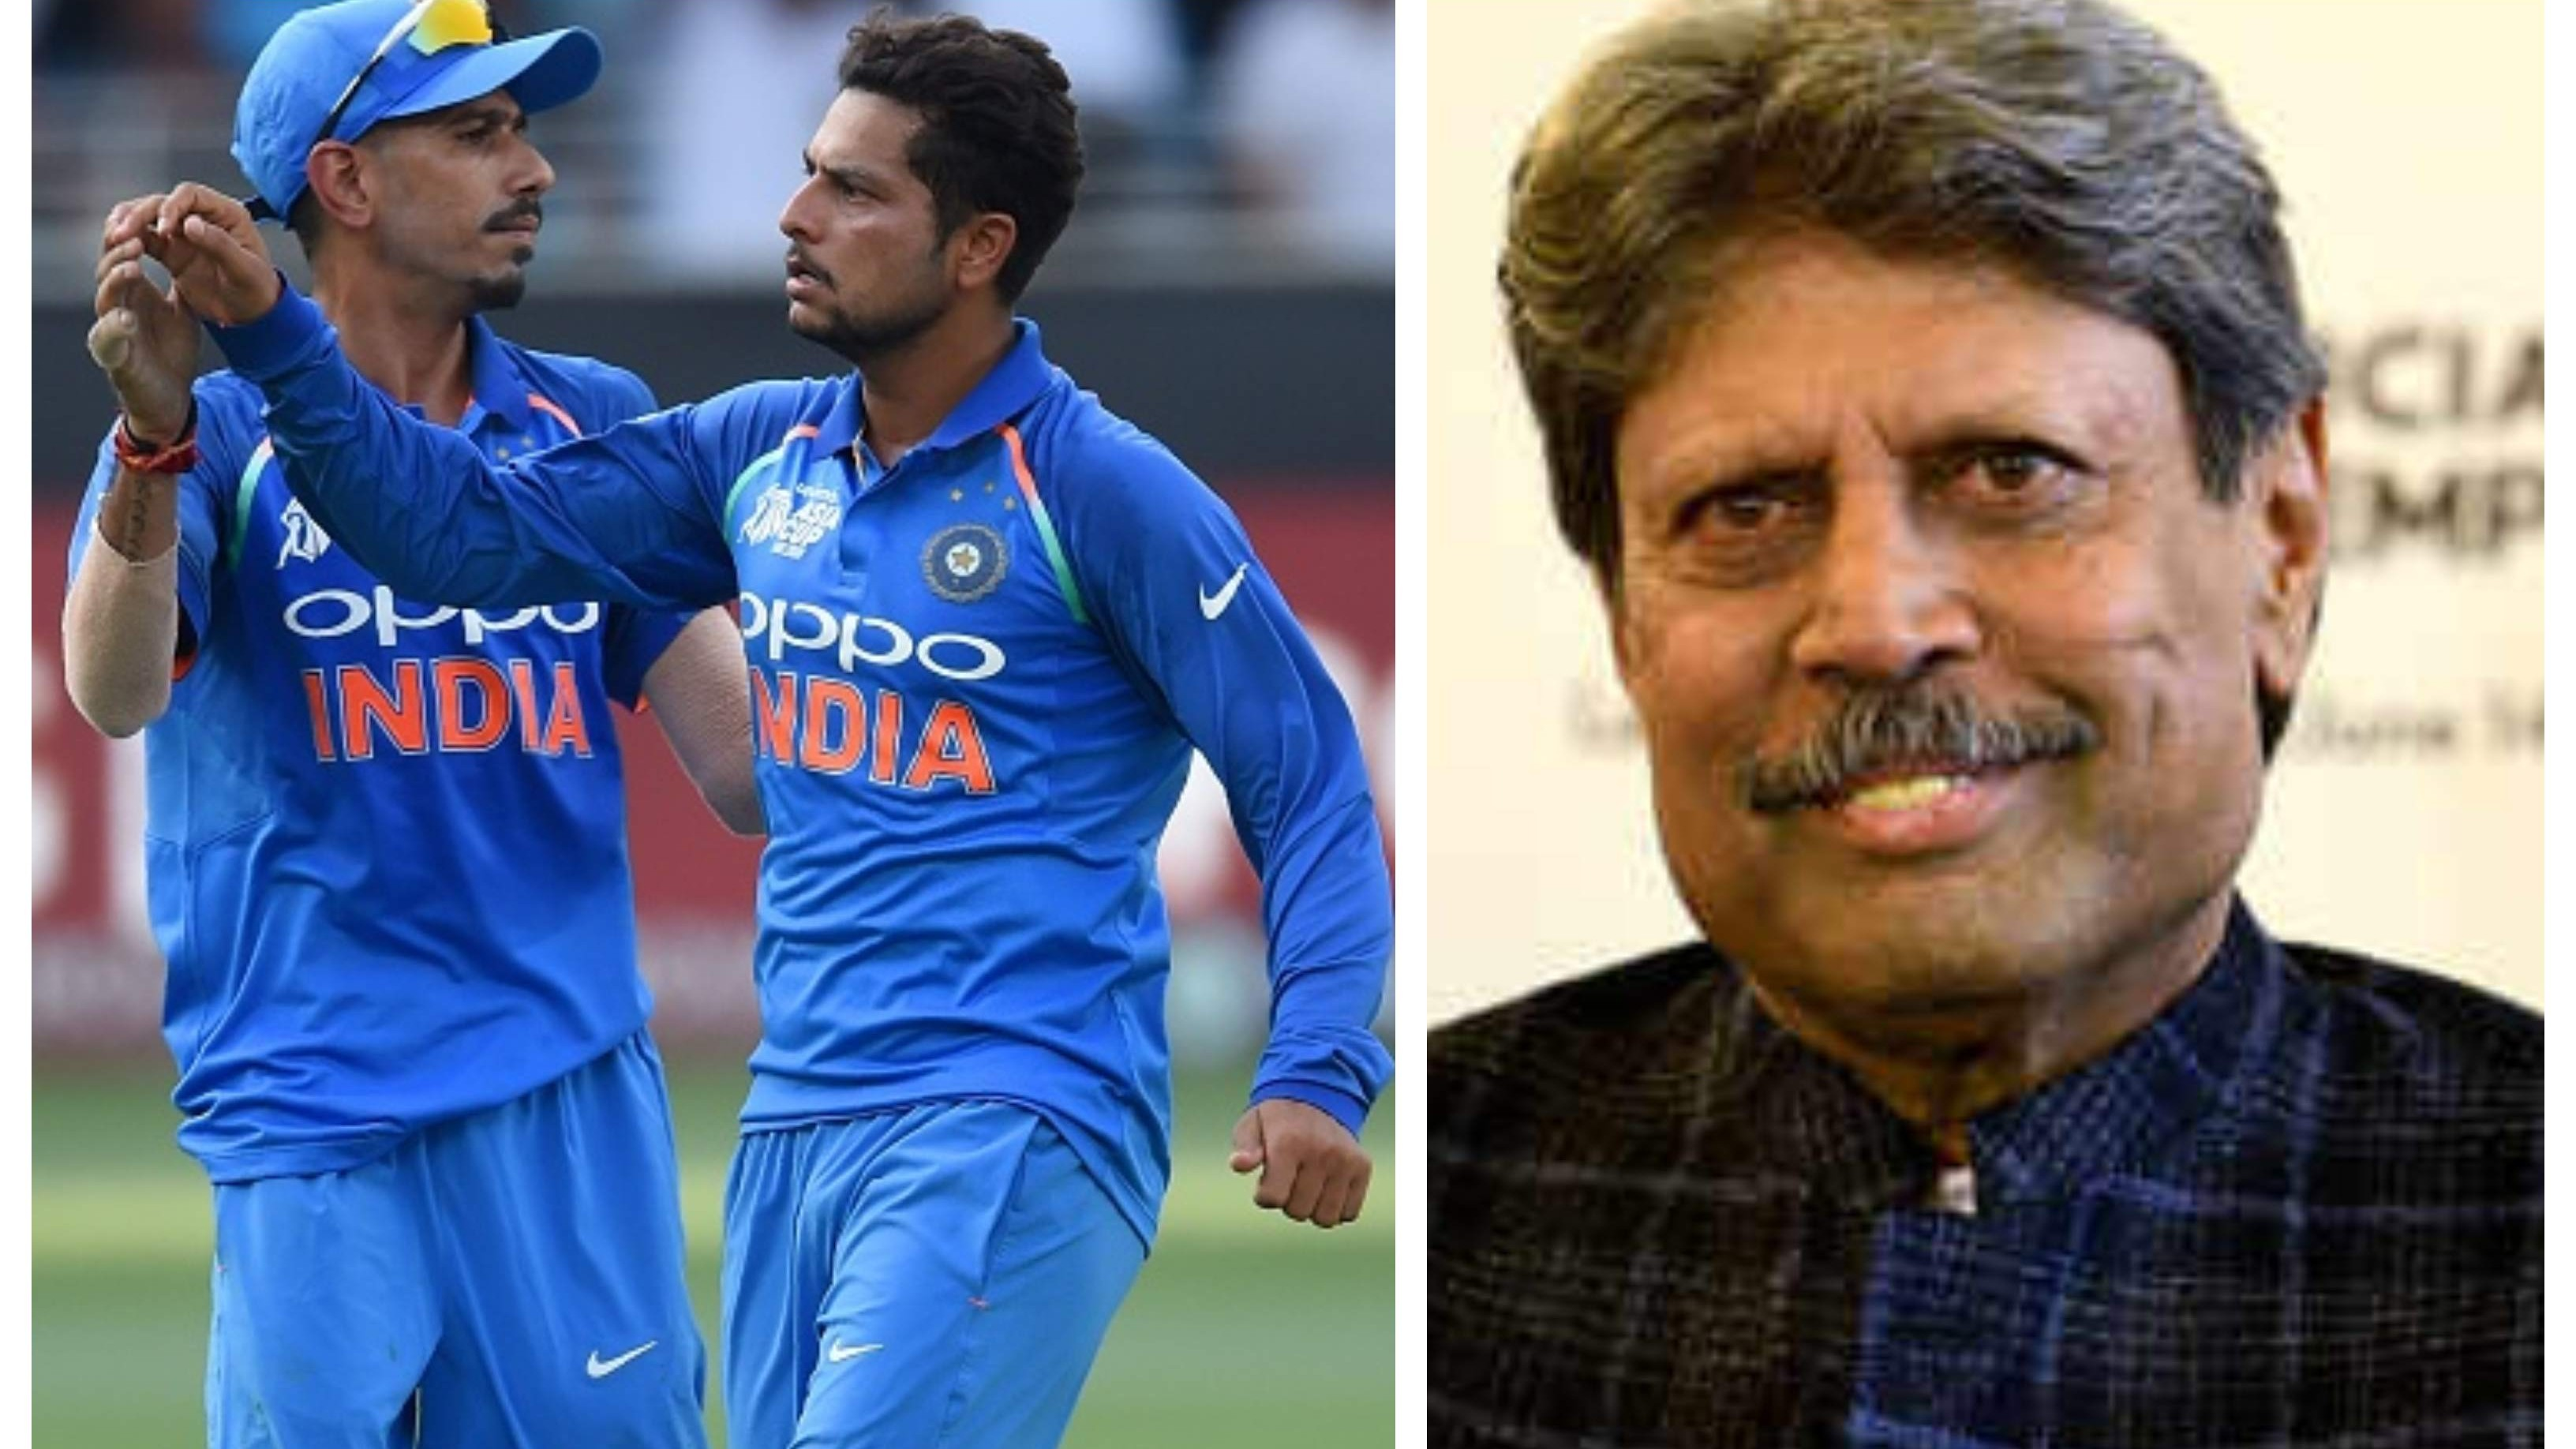 NZ v IND 2020: Kapil Dev shares his opinion on India not playing Kuldeep and Chahal together